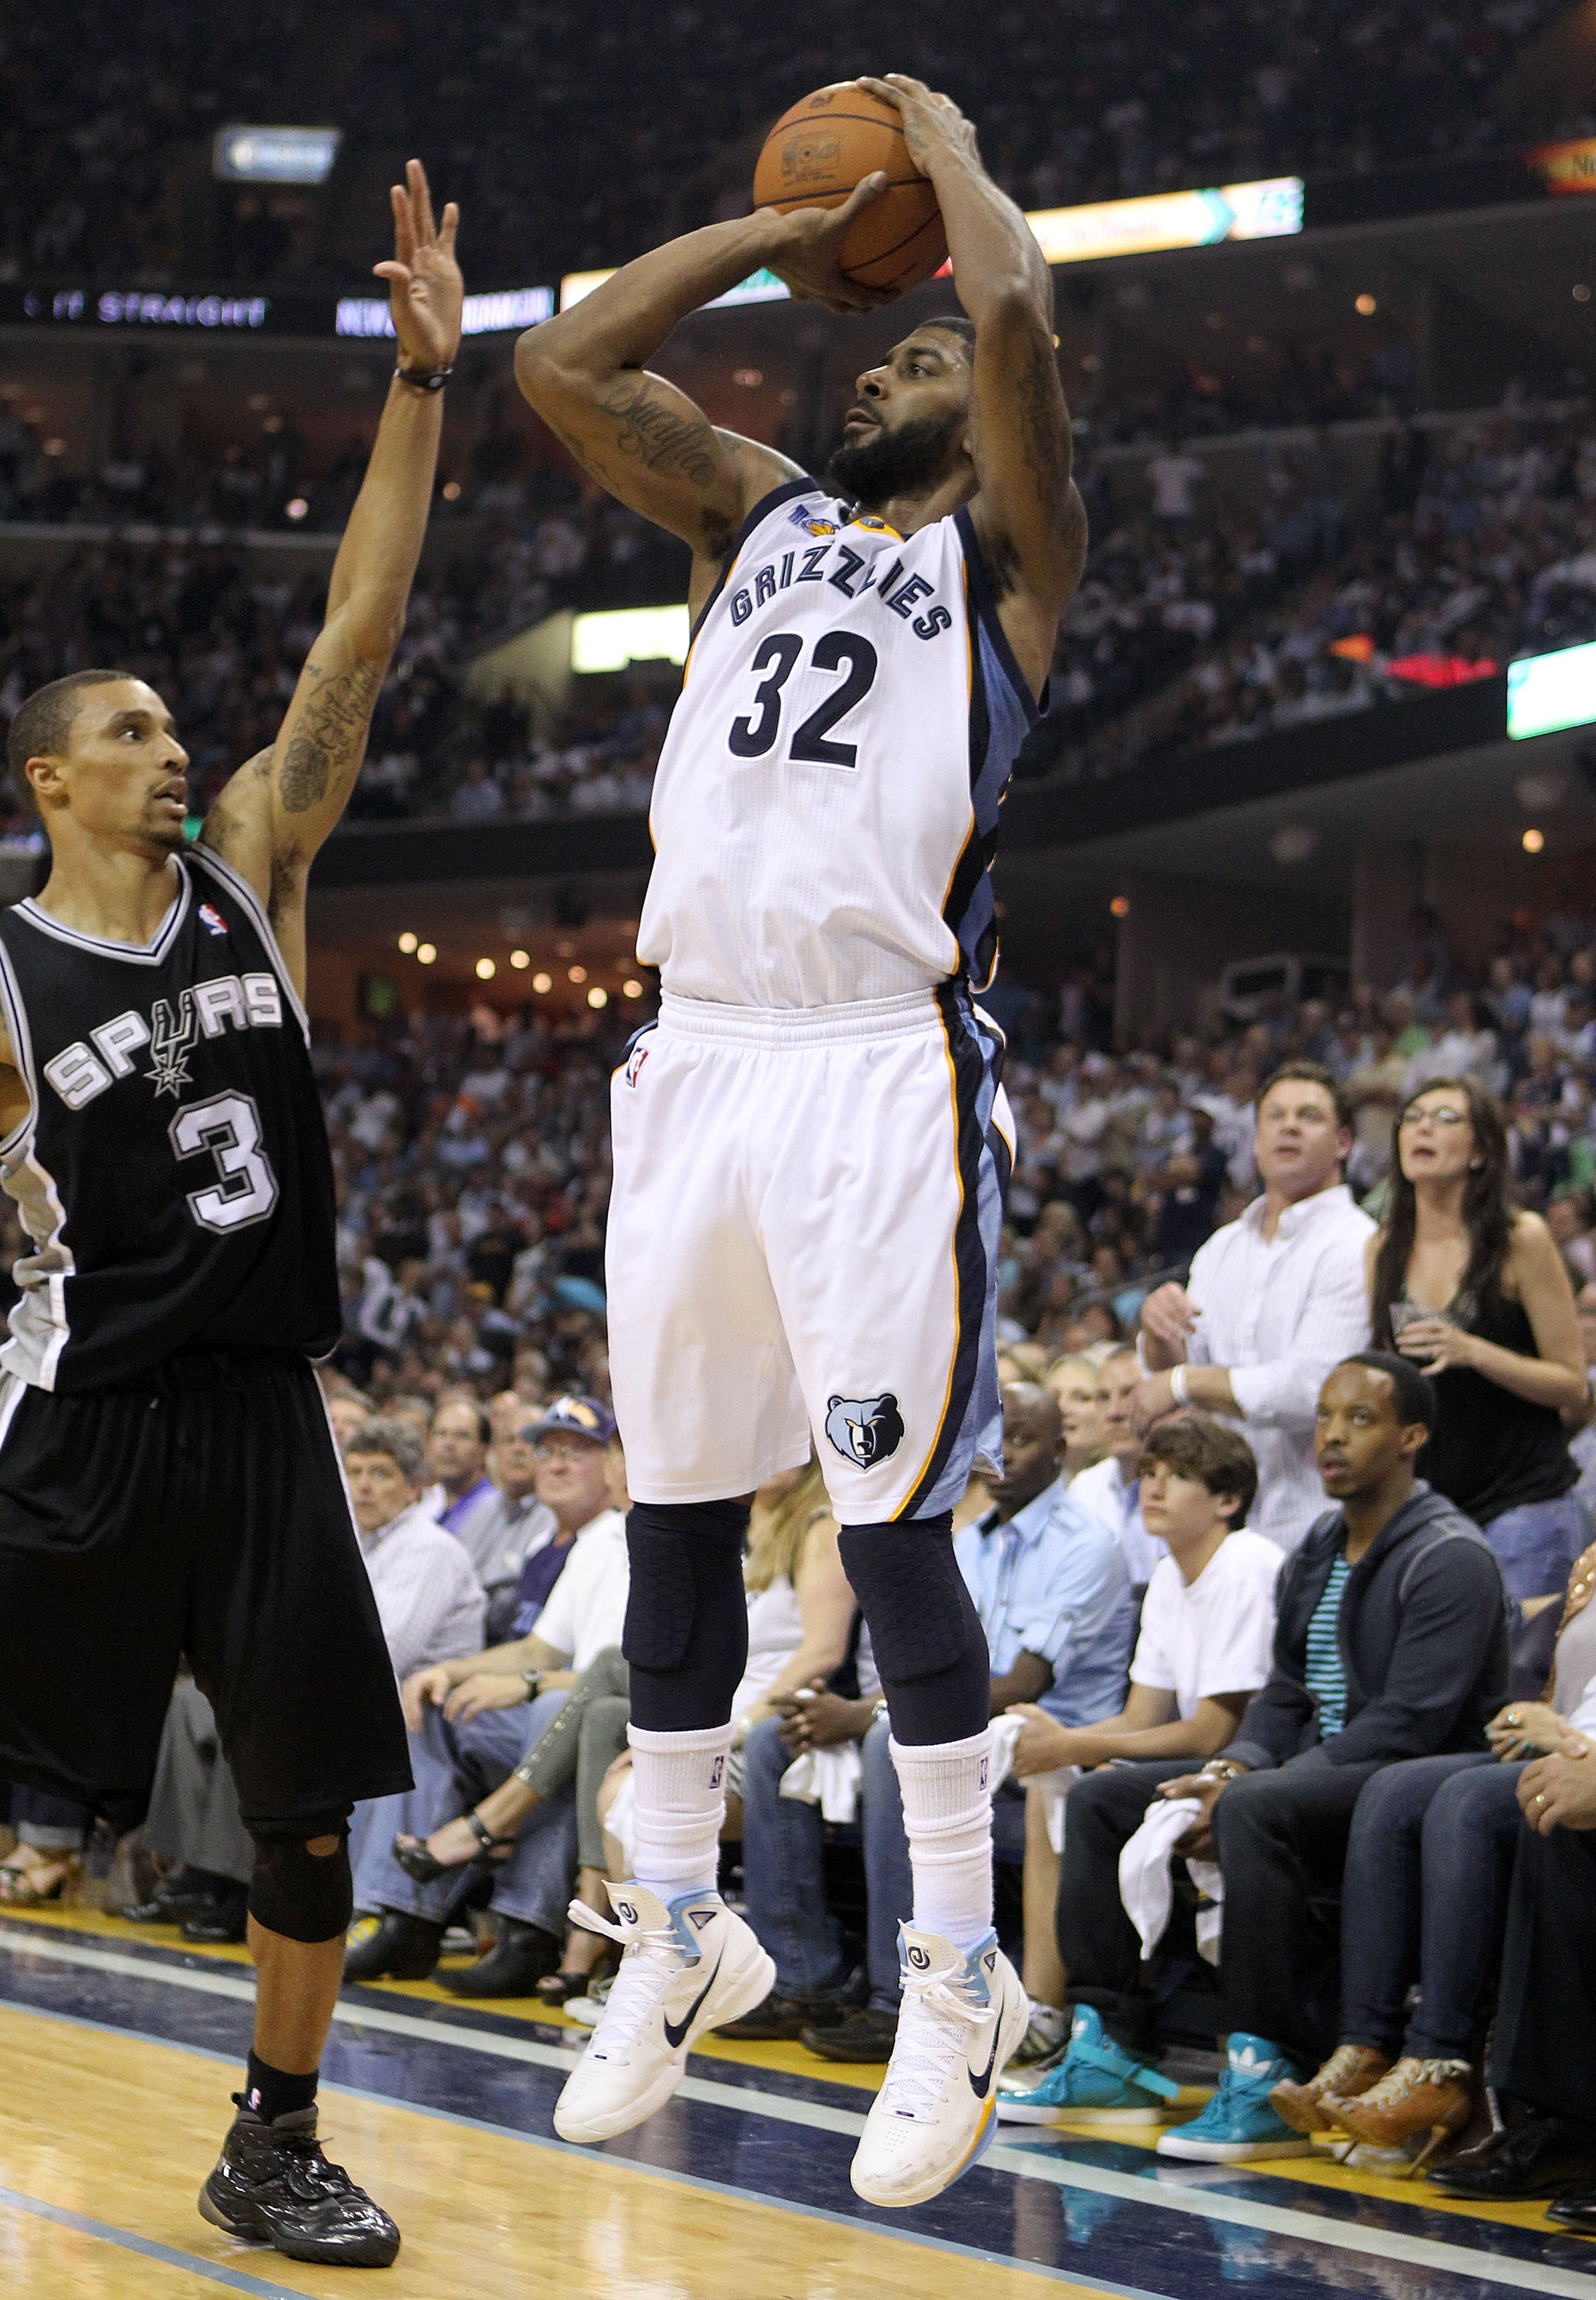 MEMPHIS, TN - APRIL 25:  O.J. Mayo #32 of the   Memphis Grizzlies shoots the ball during the game against the San Antonio Spurs in Game Four of the Western Conference Quarterfinals in the 2011 NBA Playoffs at FedExForum on April 25, 2011 in Memphis, Tenne